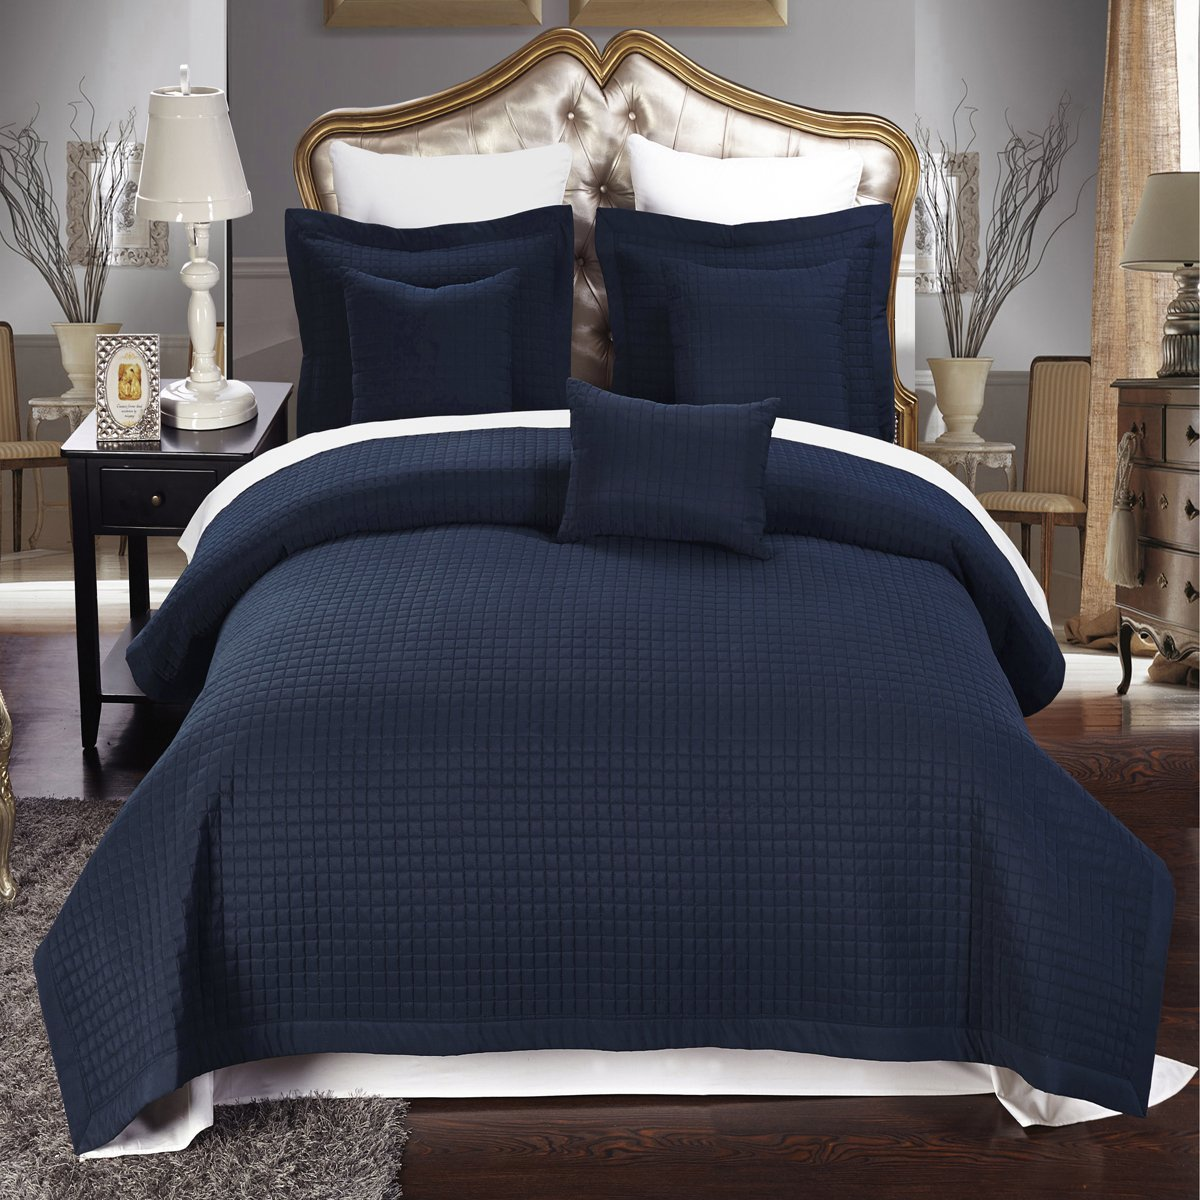 Twin Bed Comforters | Full Size Comforter | Navy Blue Comforter